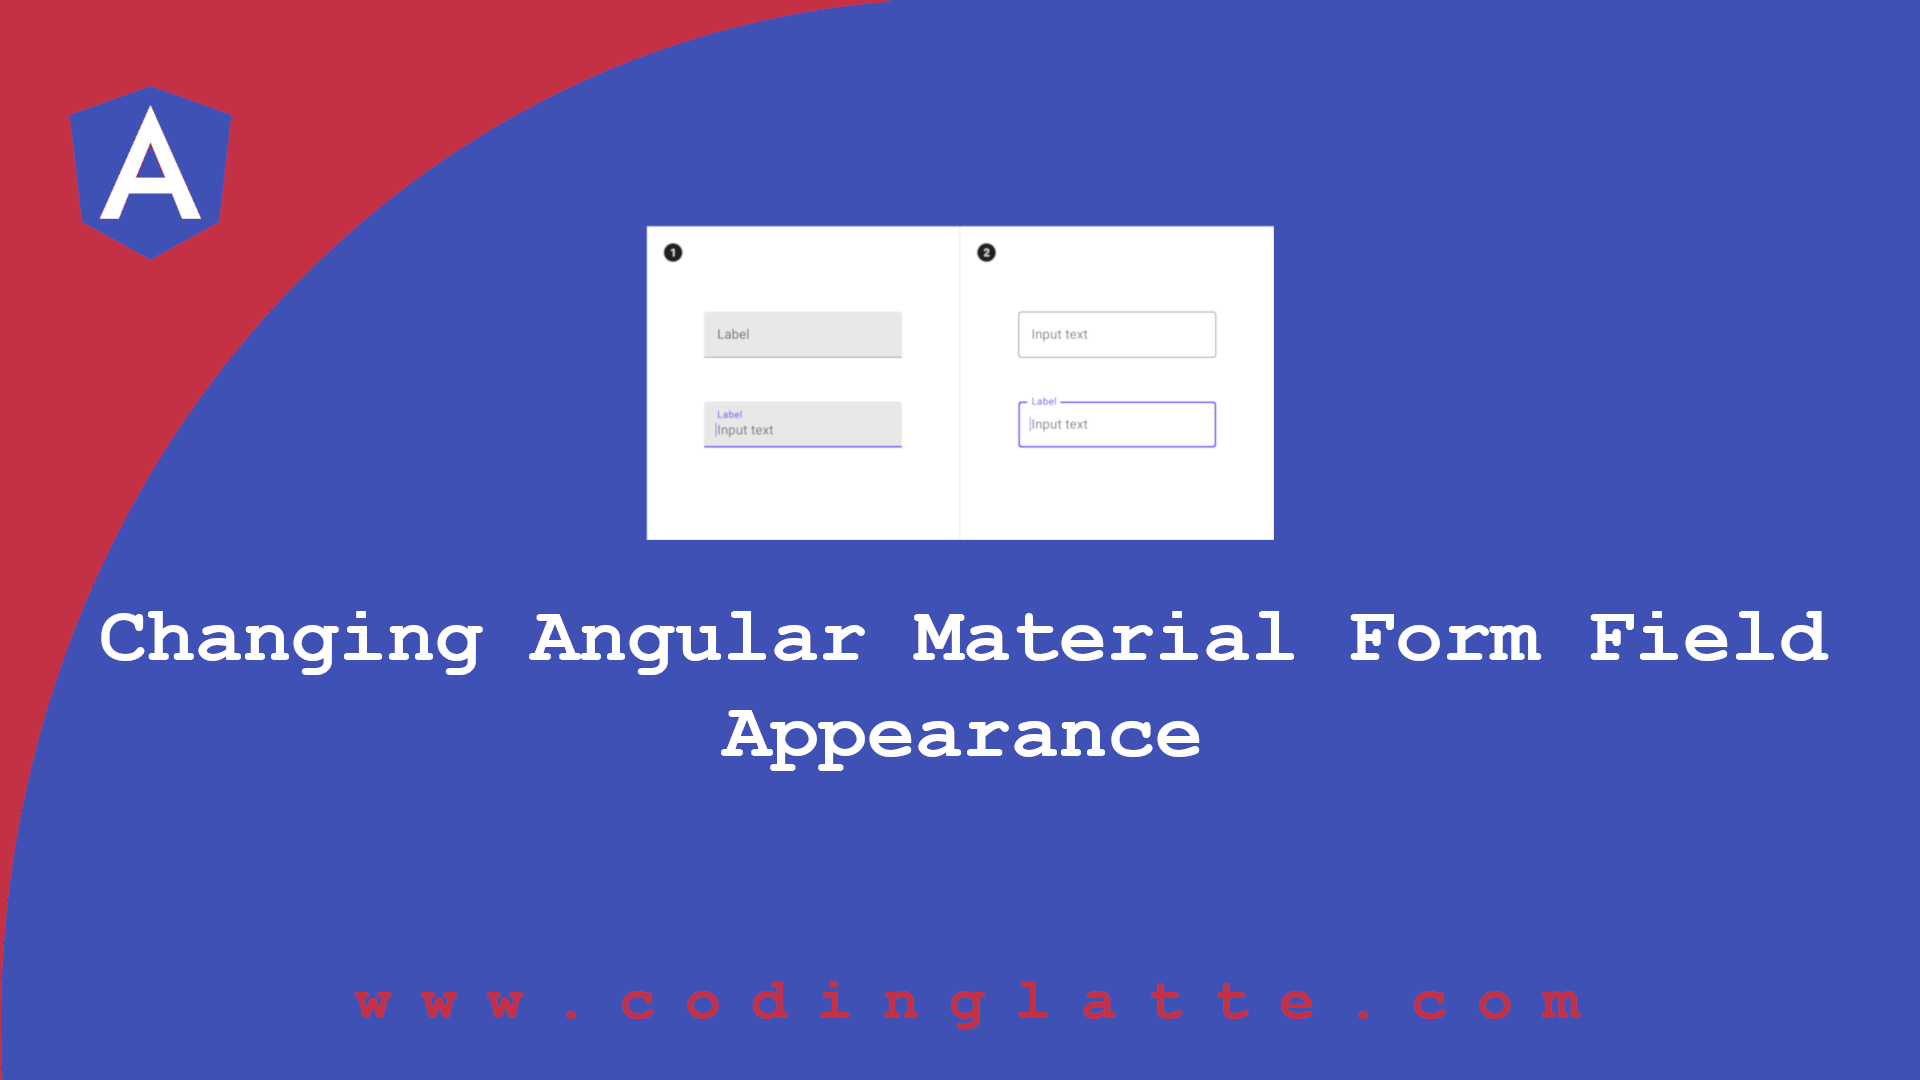 Changing Angular Material Form Field Appearance